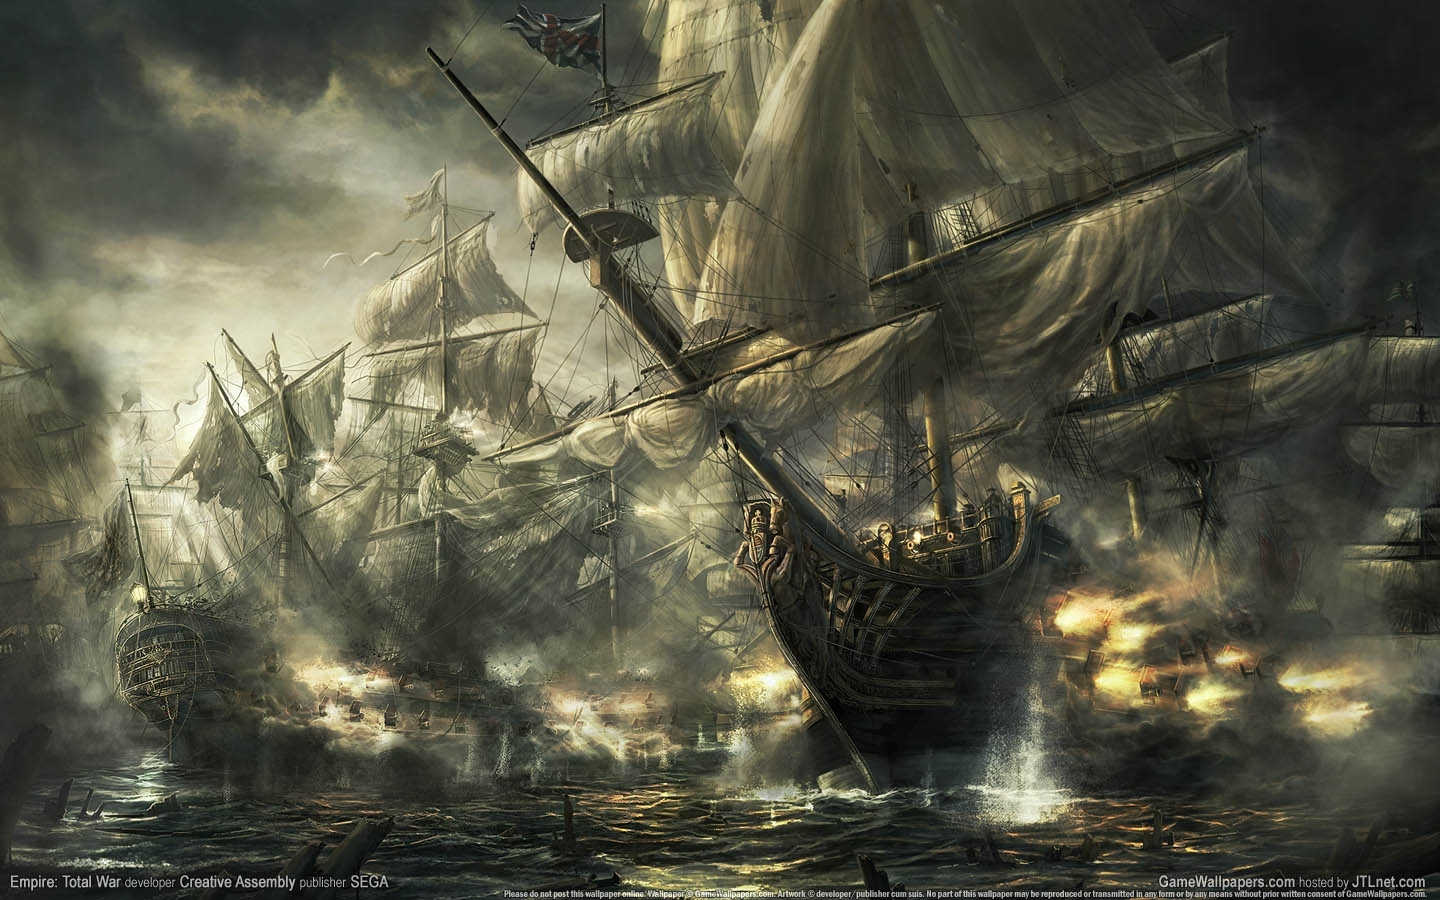 free ghost pirate ship wallpapers 1080p « long wallpapers